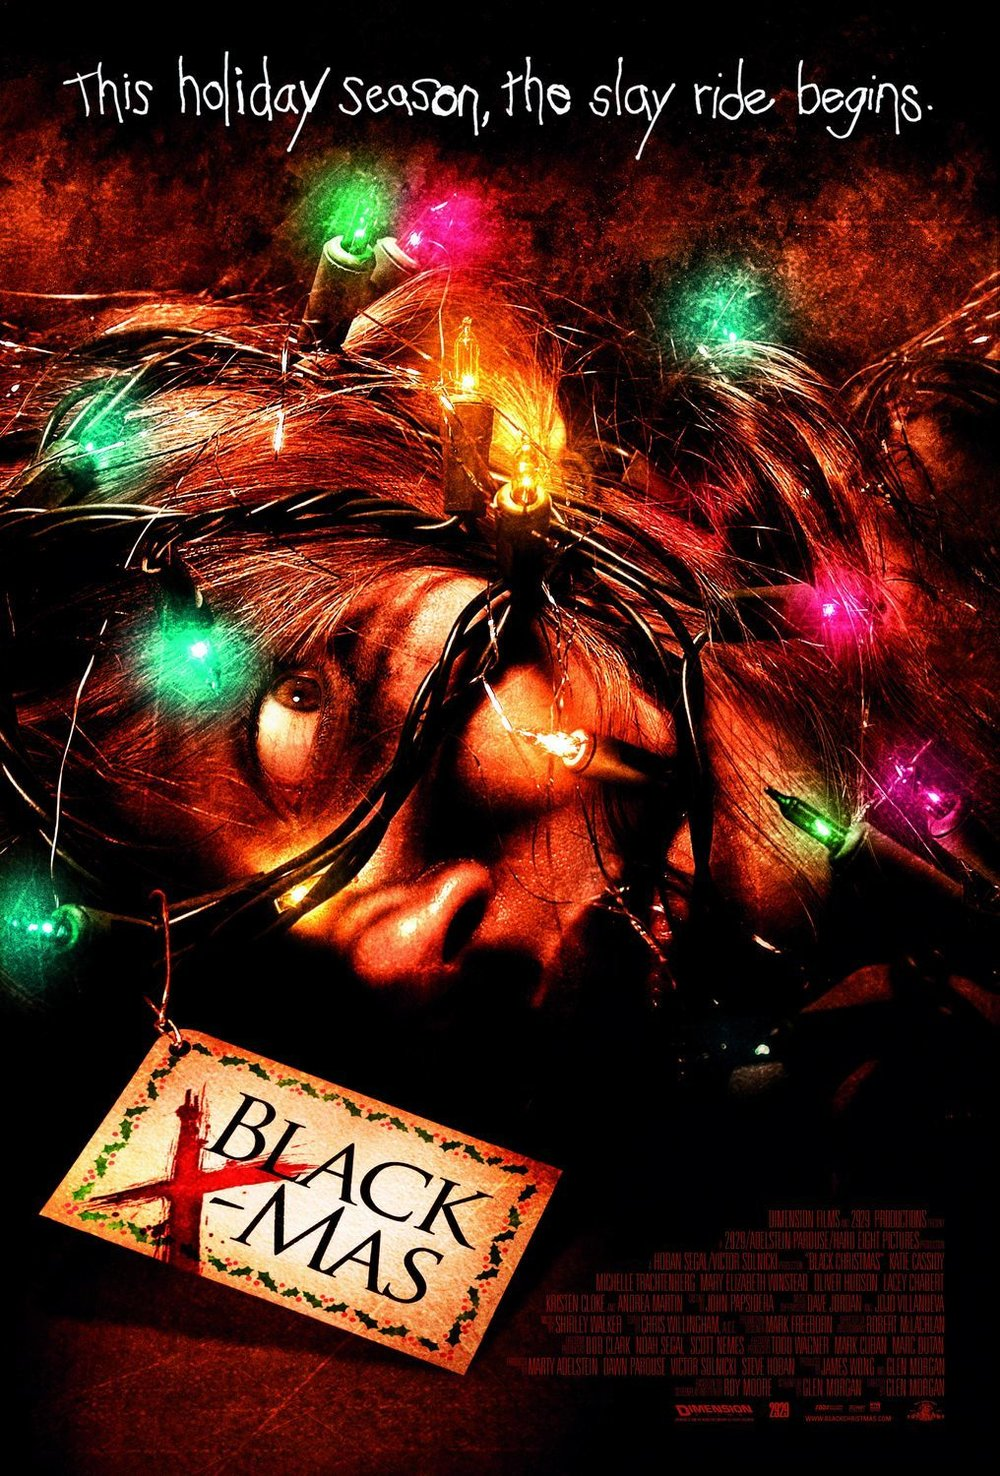 14. Black X-Mas (2006) - Glen Morgan's remake of Black Christmas realizes it can't be the original so instead adds a twisted back story and some truly skincrawling plot beats. While it has a few moments of misplaced misogyny from the hands of bad producers, it still manages to be a slick, brutal remake with a mean spirit and some excellent set piece kills.